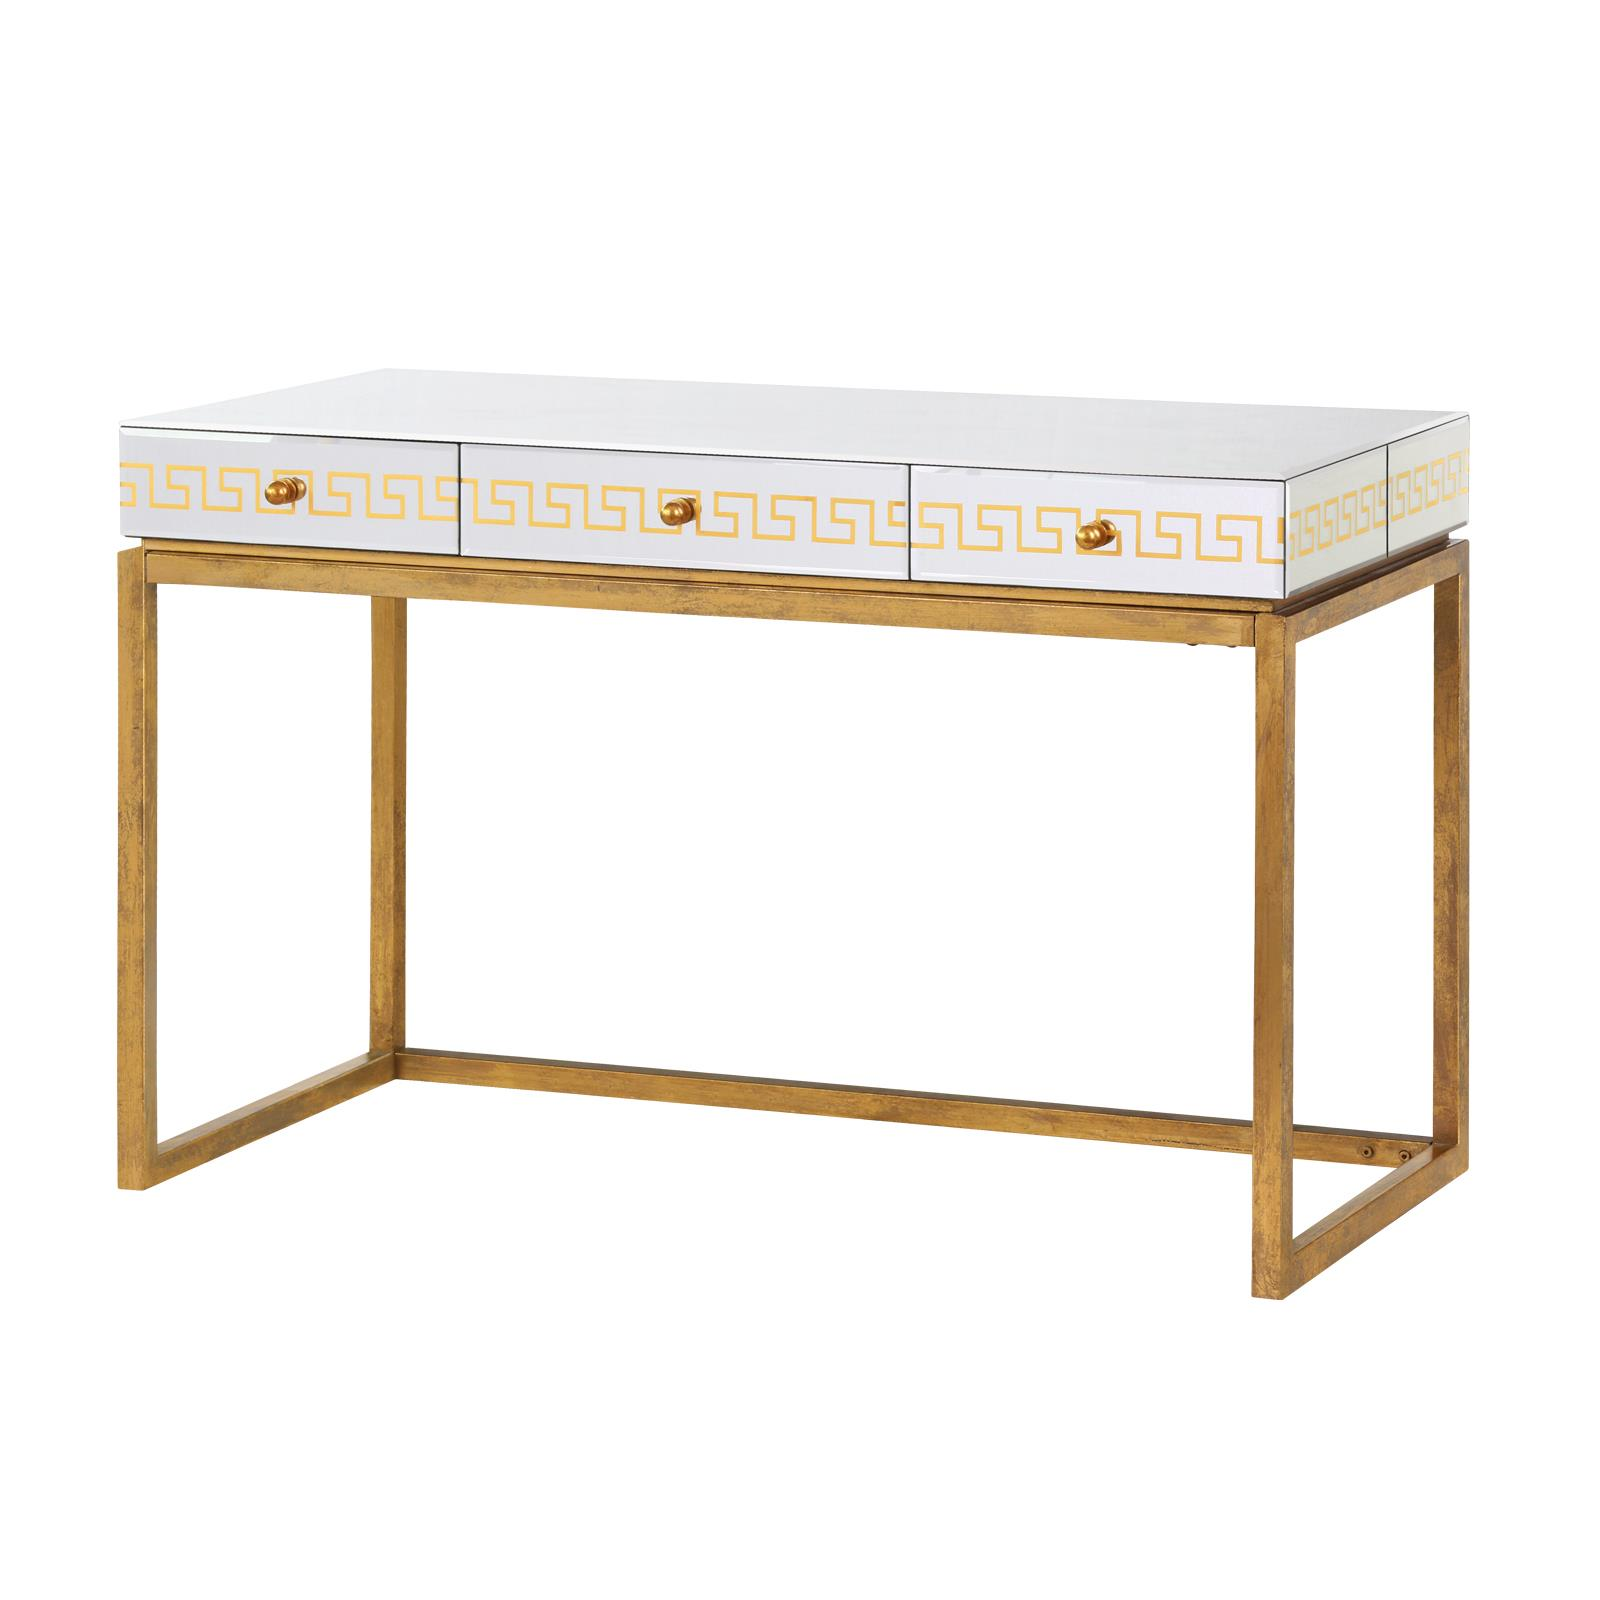 Well-liked Donatella Desk/Console Table, Antique Gold - Bungalow 5 II51